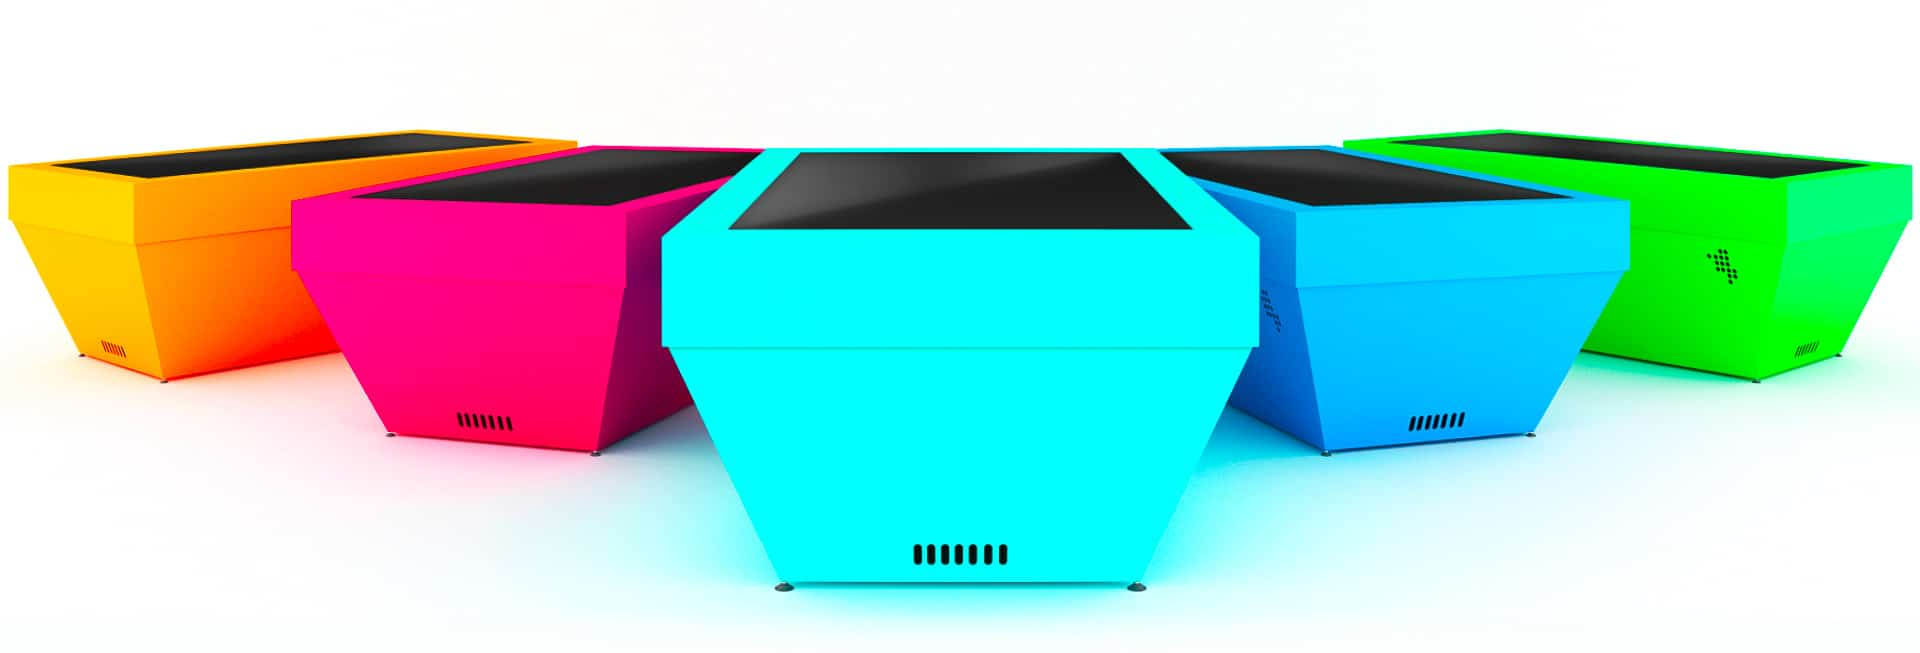 tablebox